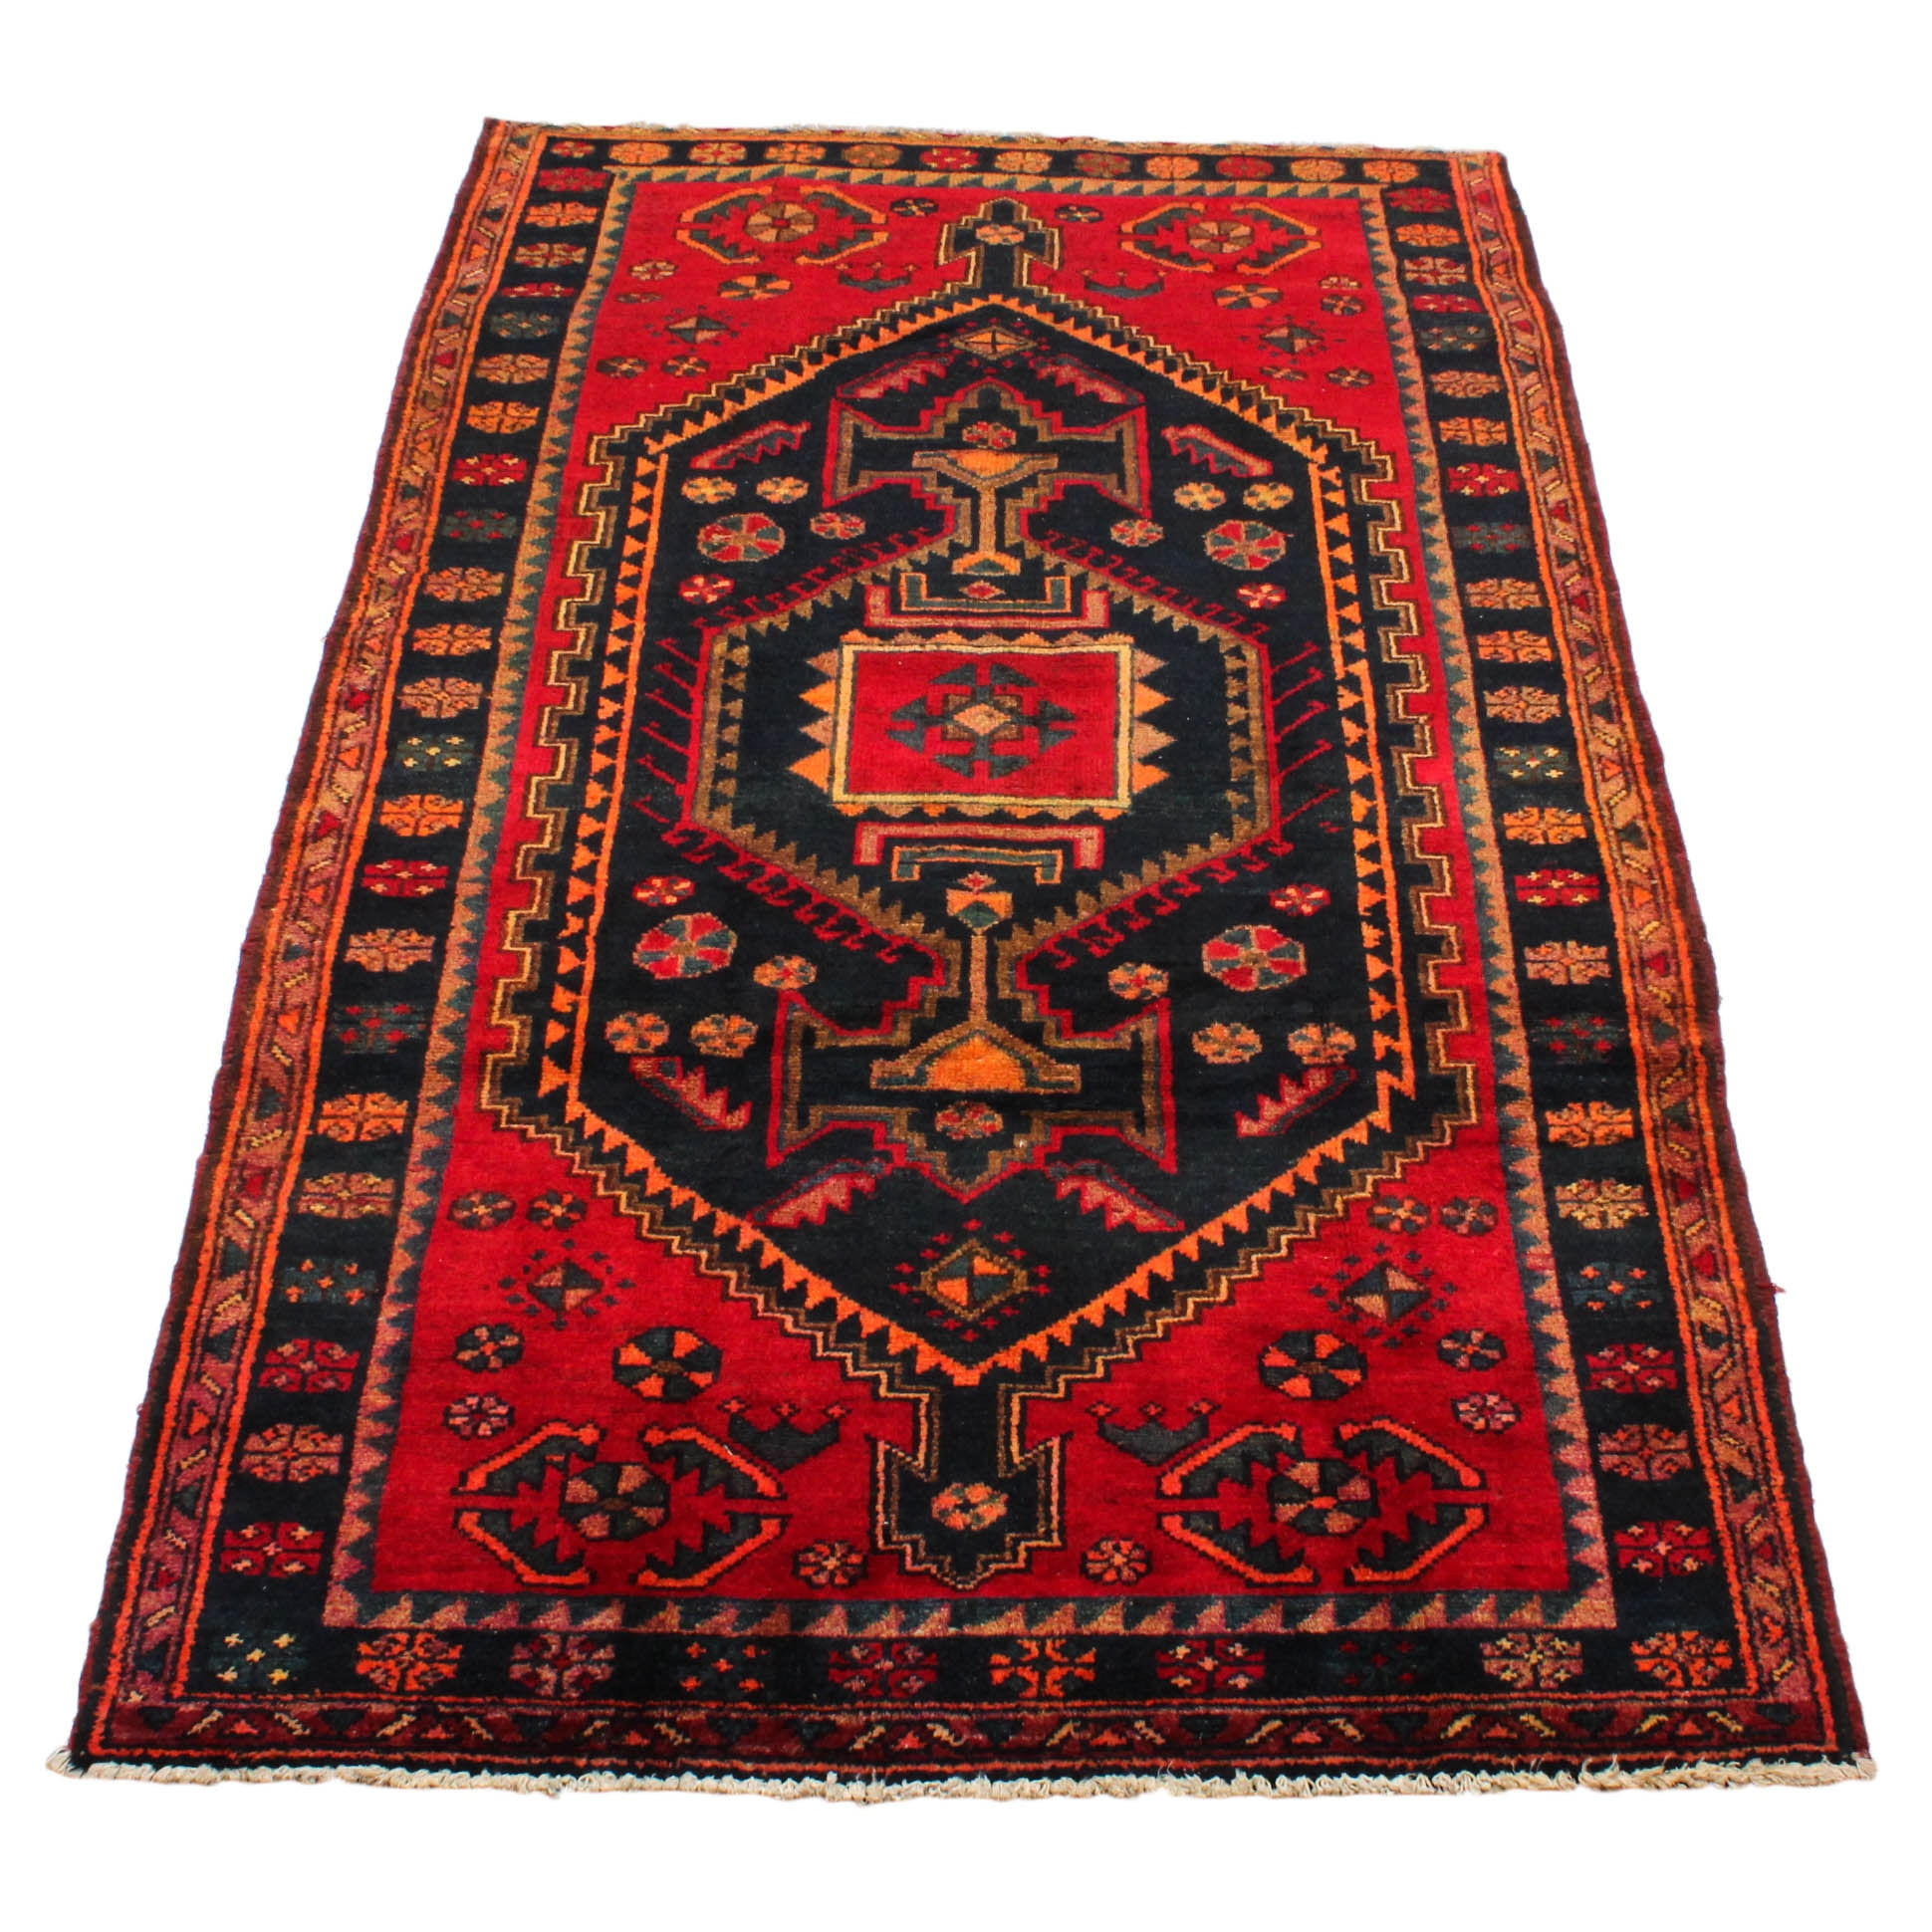 Semi-Antique Hand-Knotted Persian Zanjan Area Rug